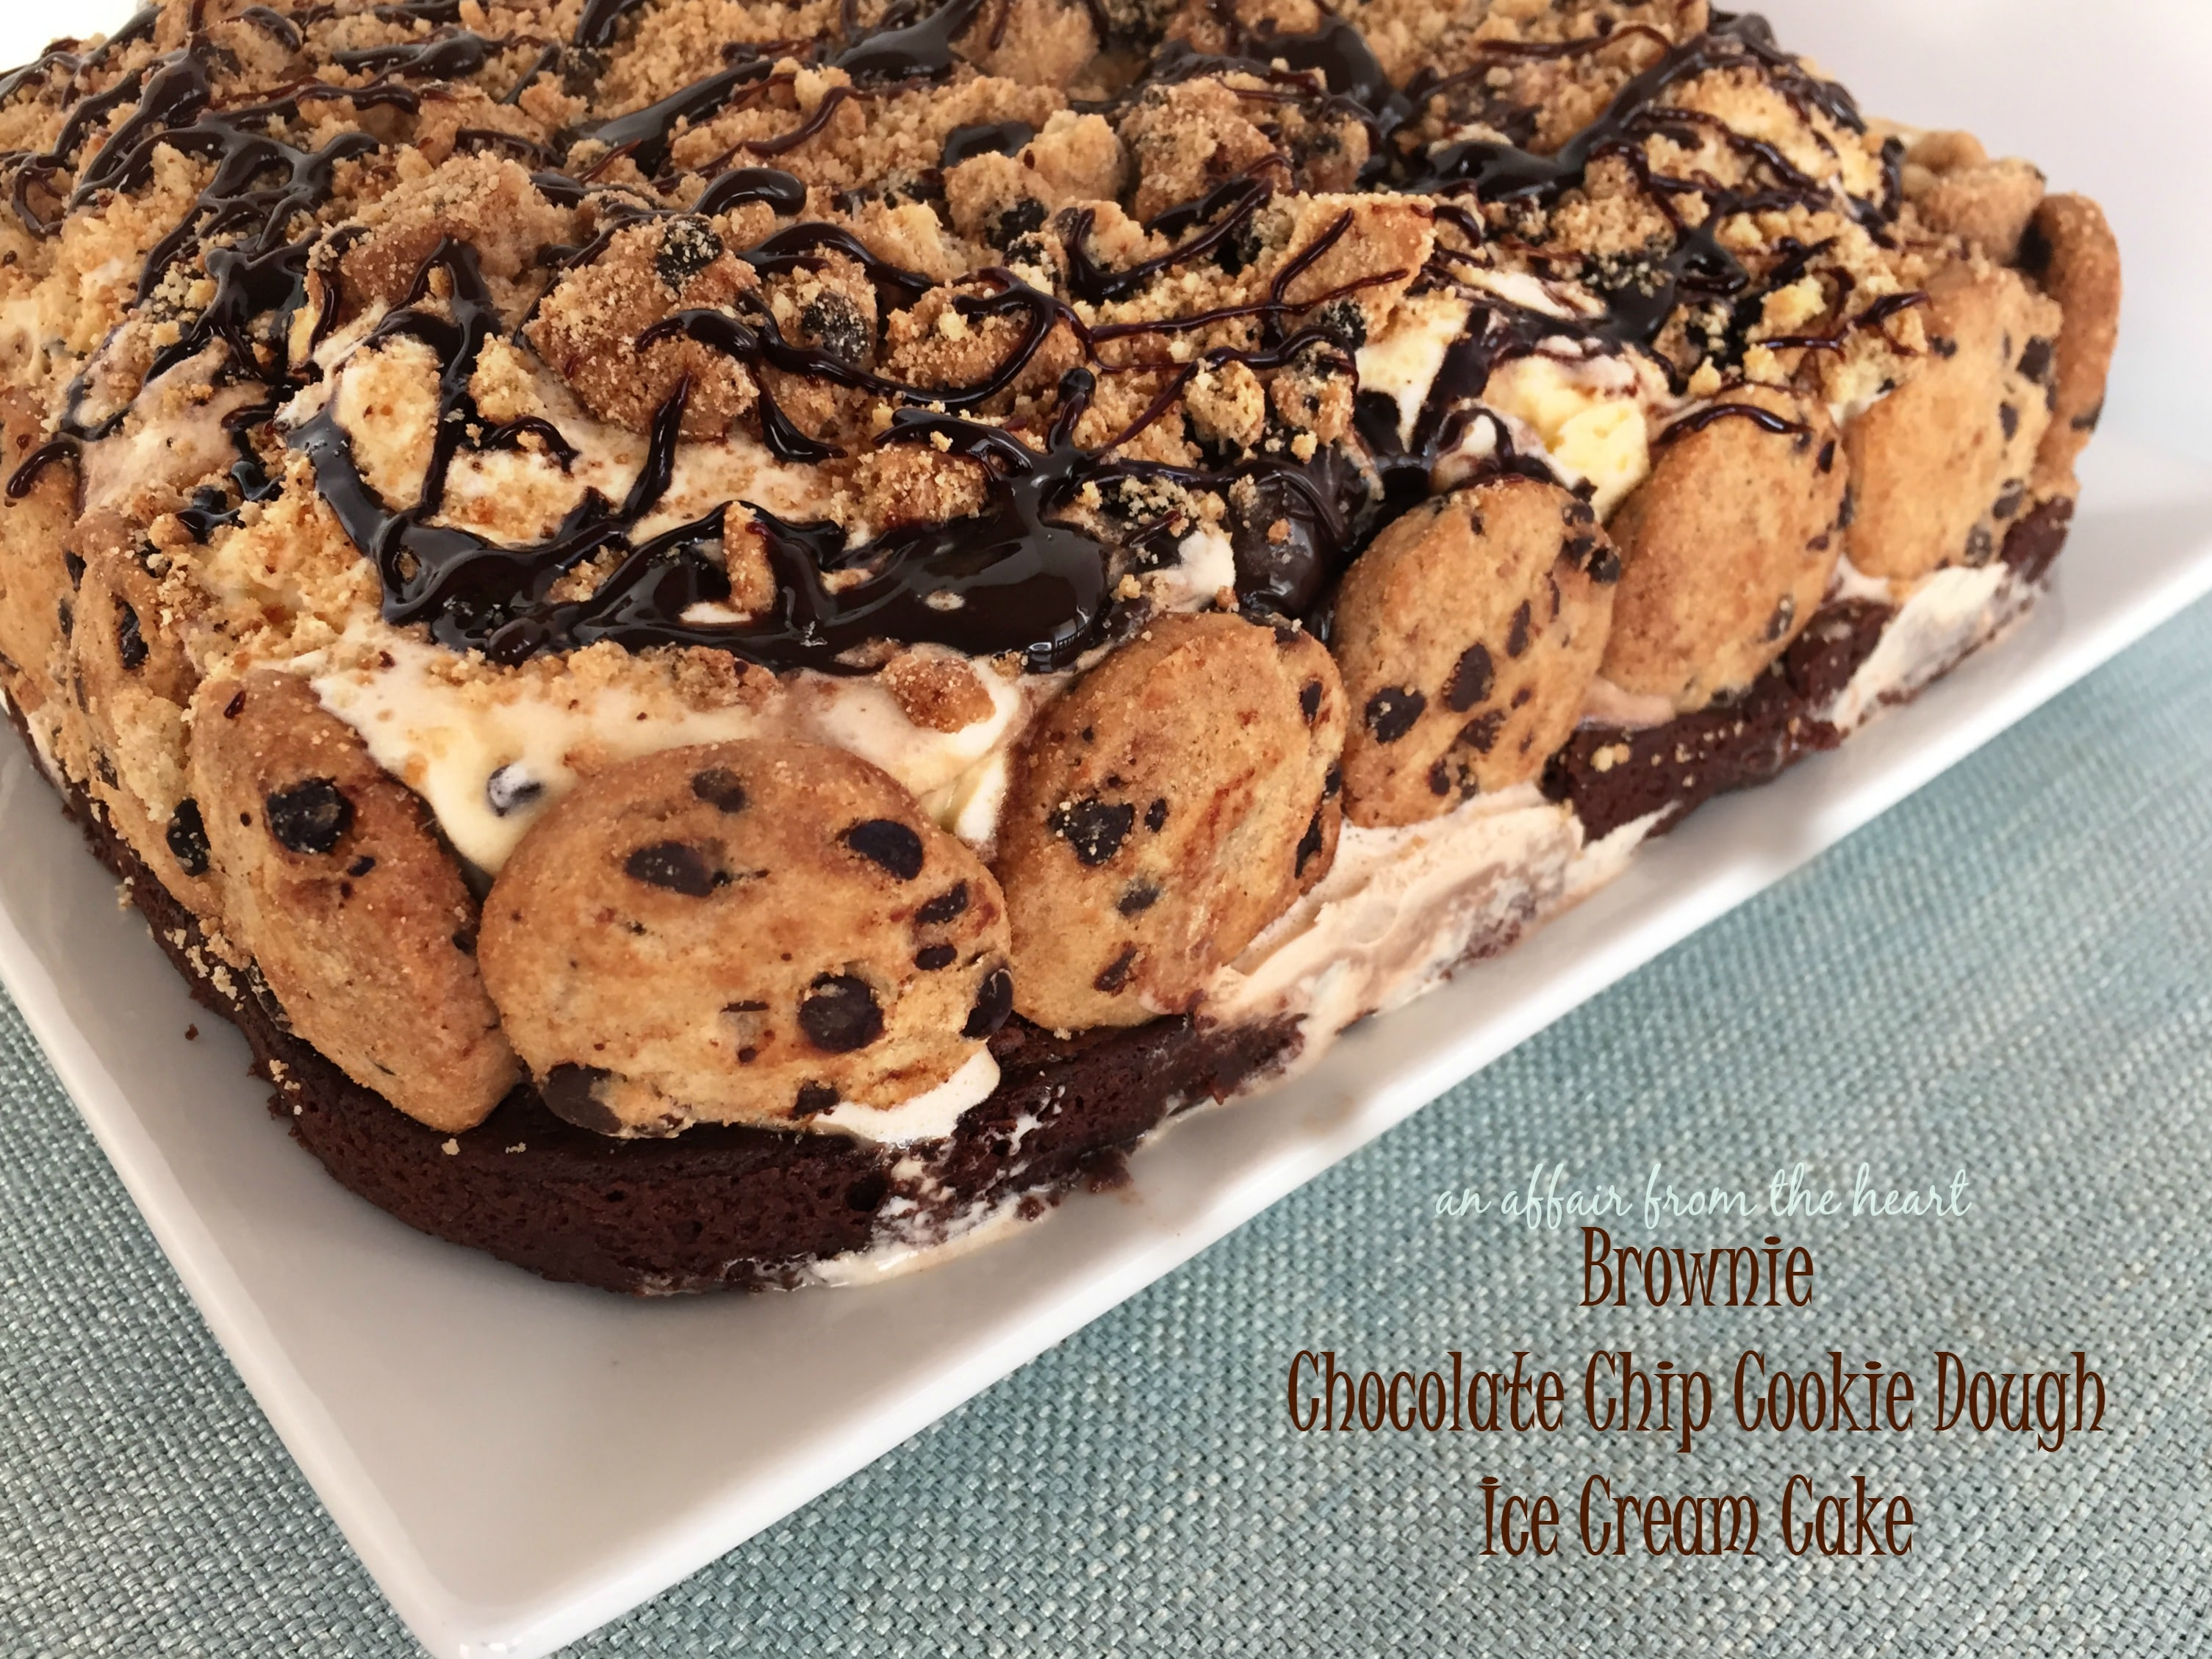 Chocolate Chip Cookie Brownie Ice Cream Cake